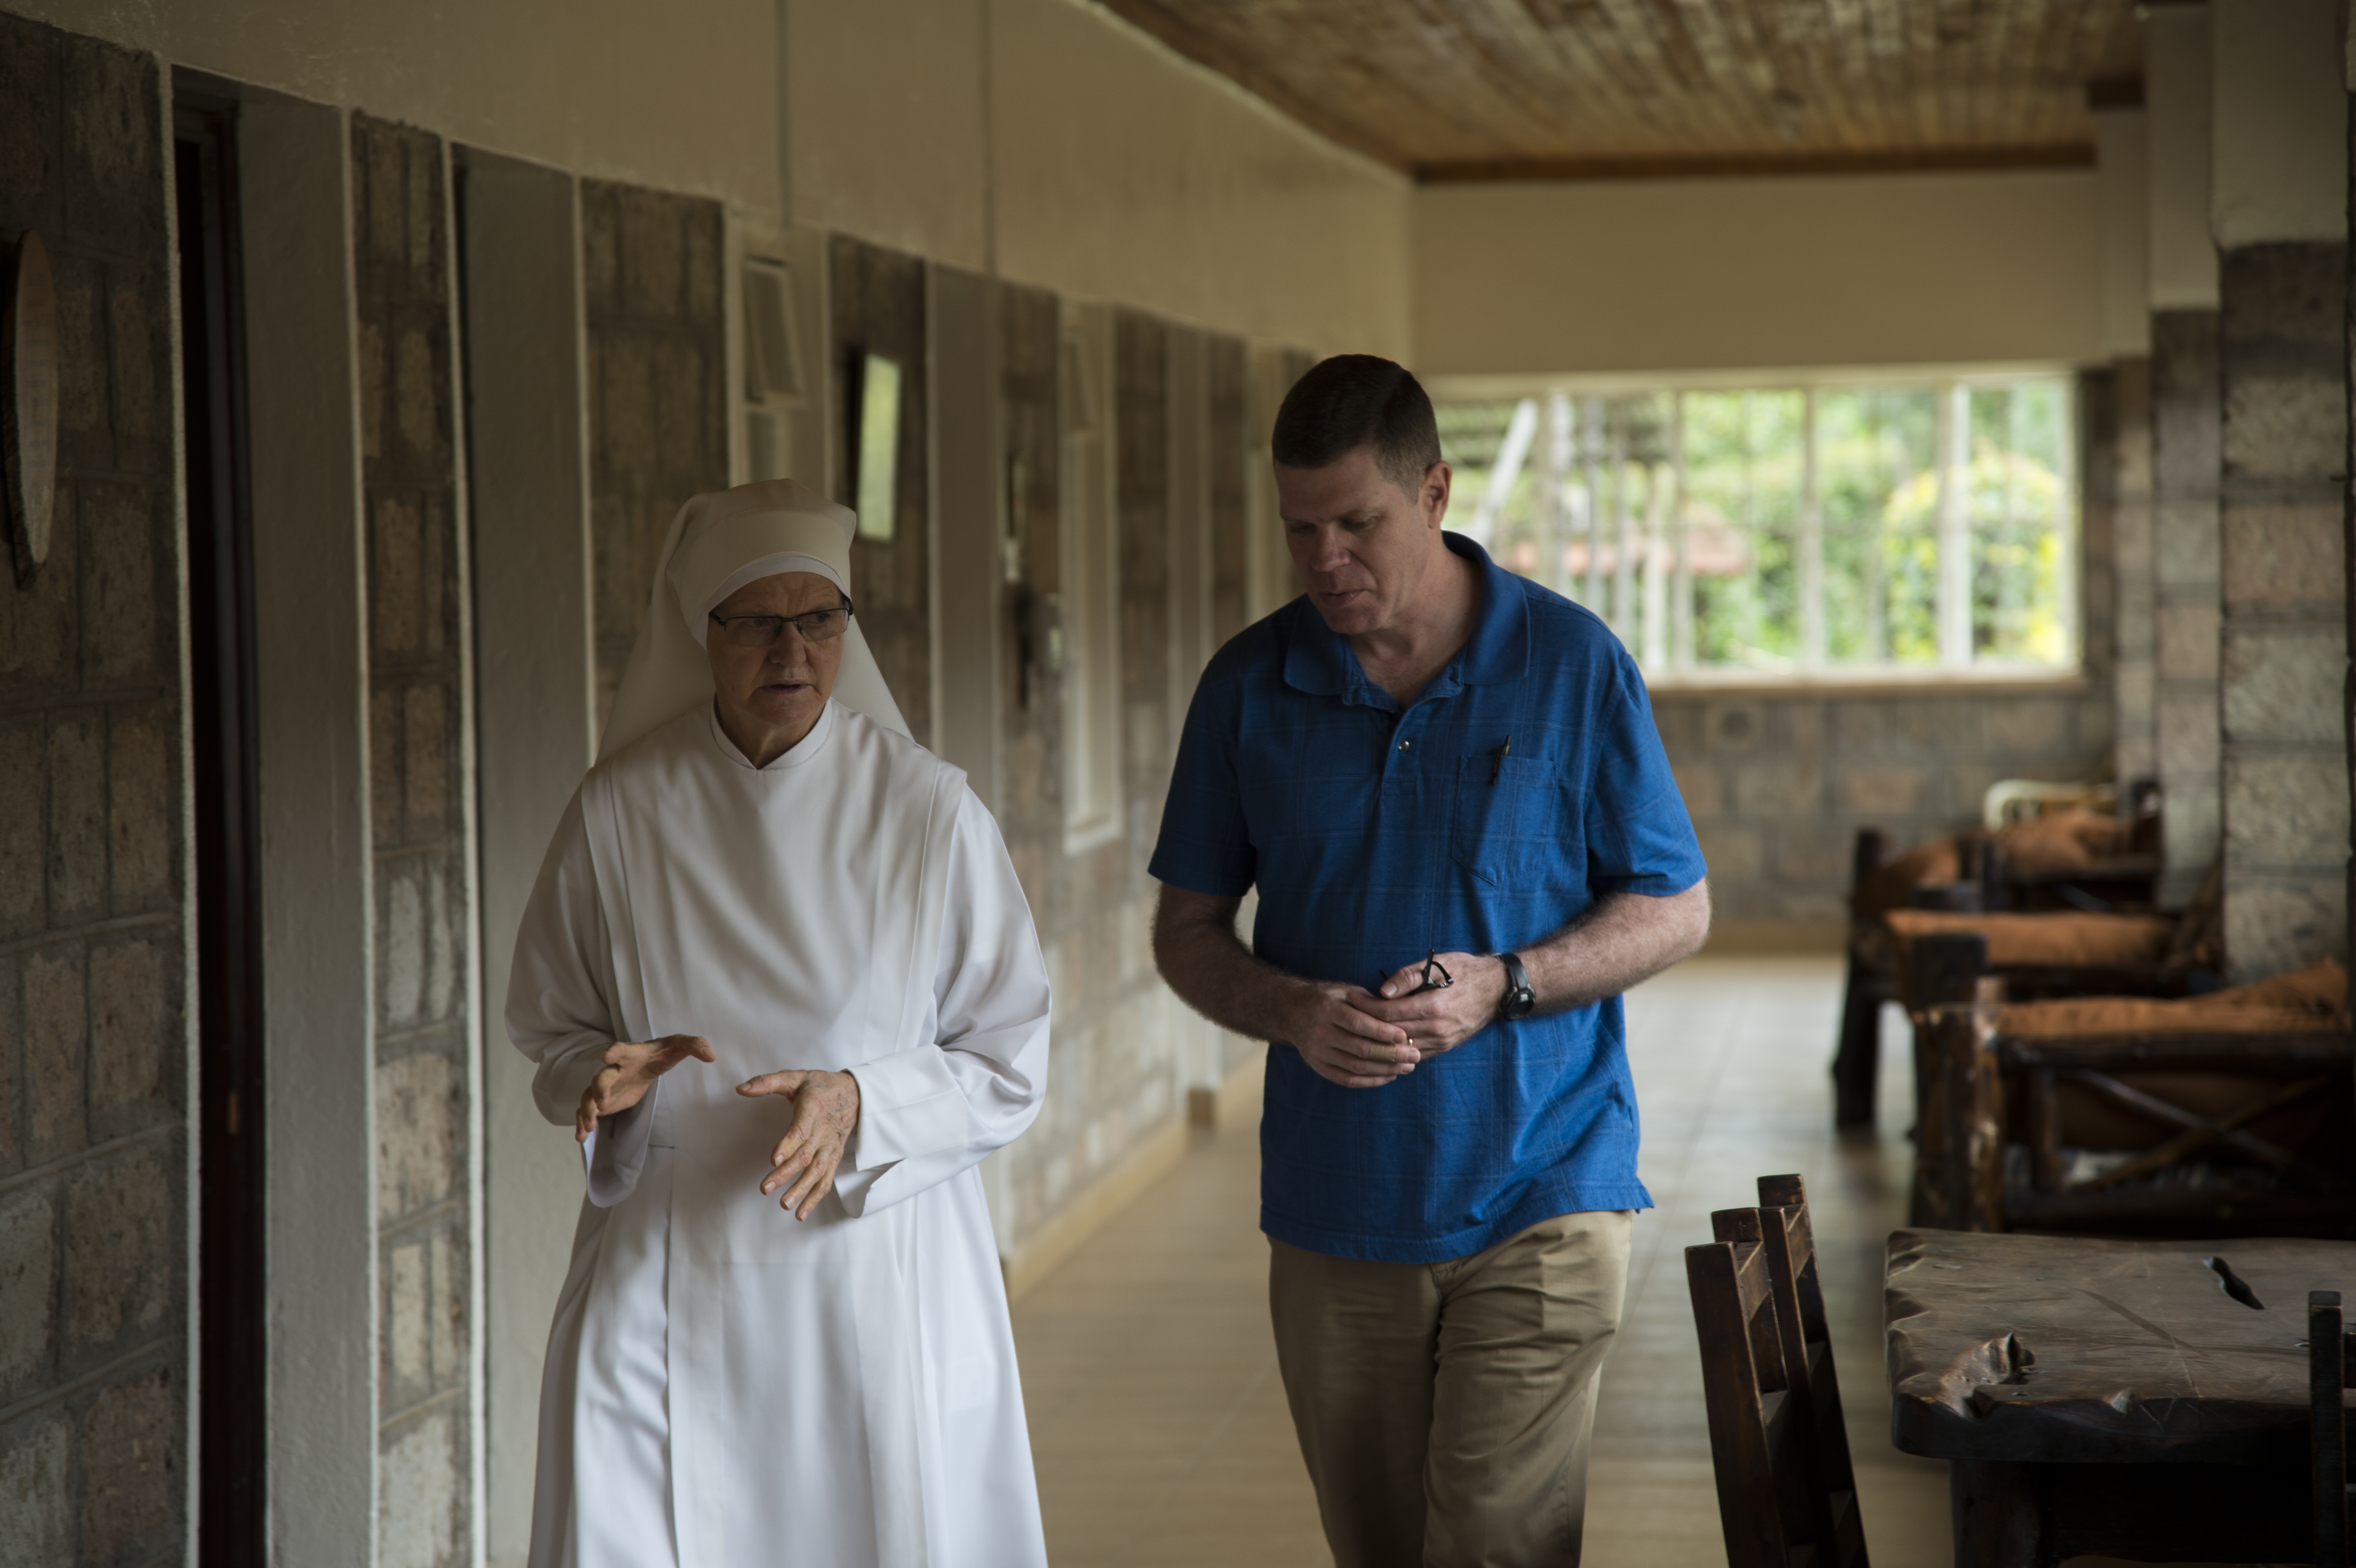 Sister Helen Creed and U.S. Navy Chaplain Capt. Travis Moger, Combined Joint Task Force-Horn of Africa office of religious affairs director, talk about the elderly care facilities and services they provide to the residents May 9, 2016, in Nairobi, Kenya. Nyumba Ya Wazee, or Home of the Elderly, provides shelter and care for 68 residents. (U.S. Air Force photo by Staff Sgt. Eric Summers Jr.)